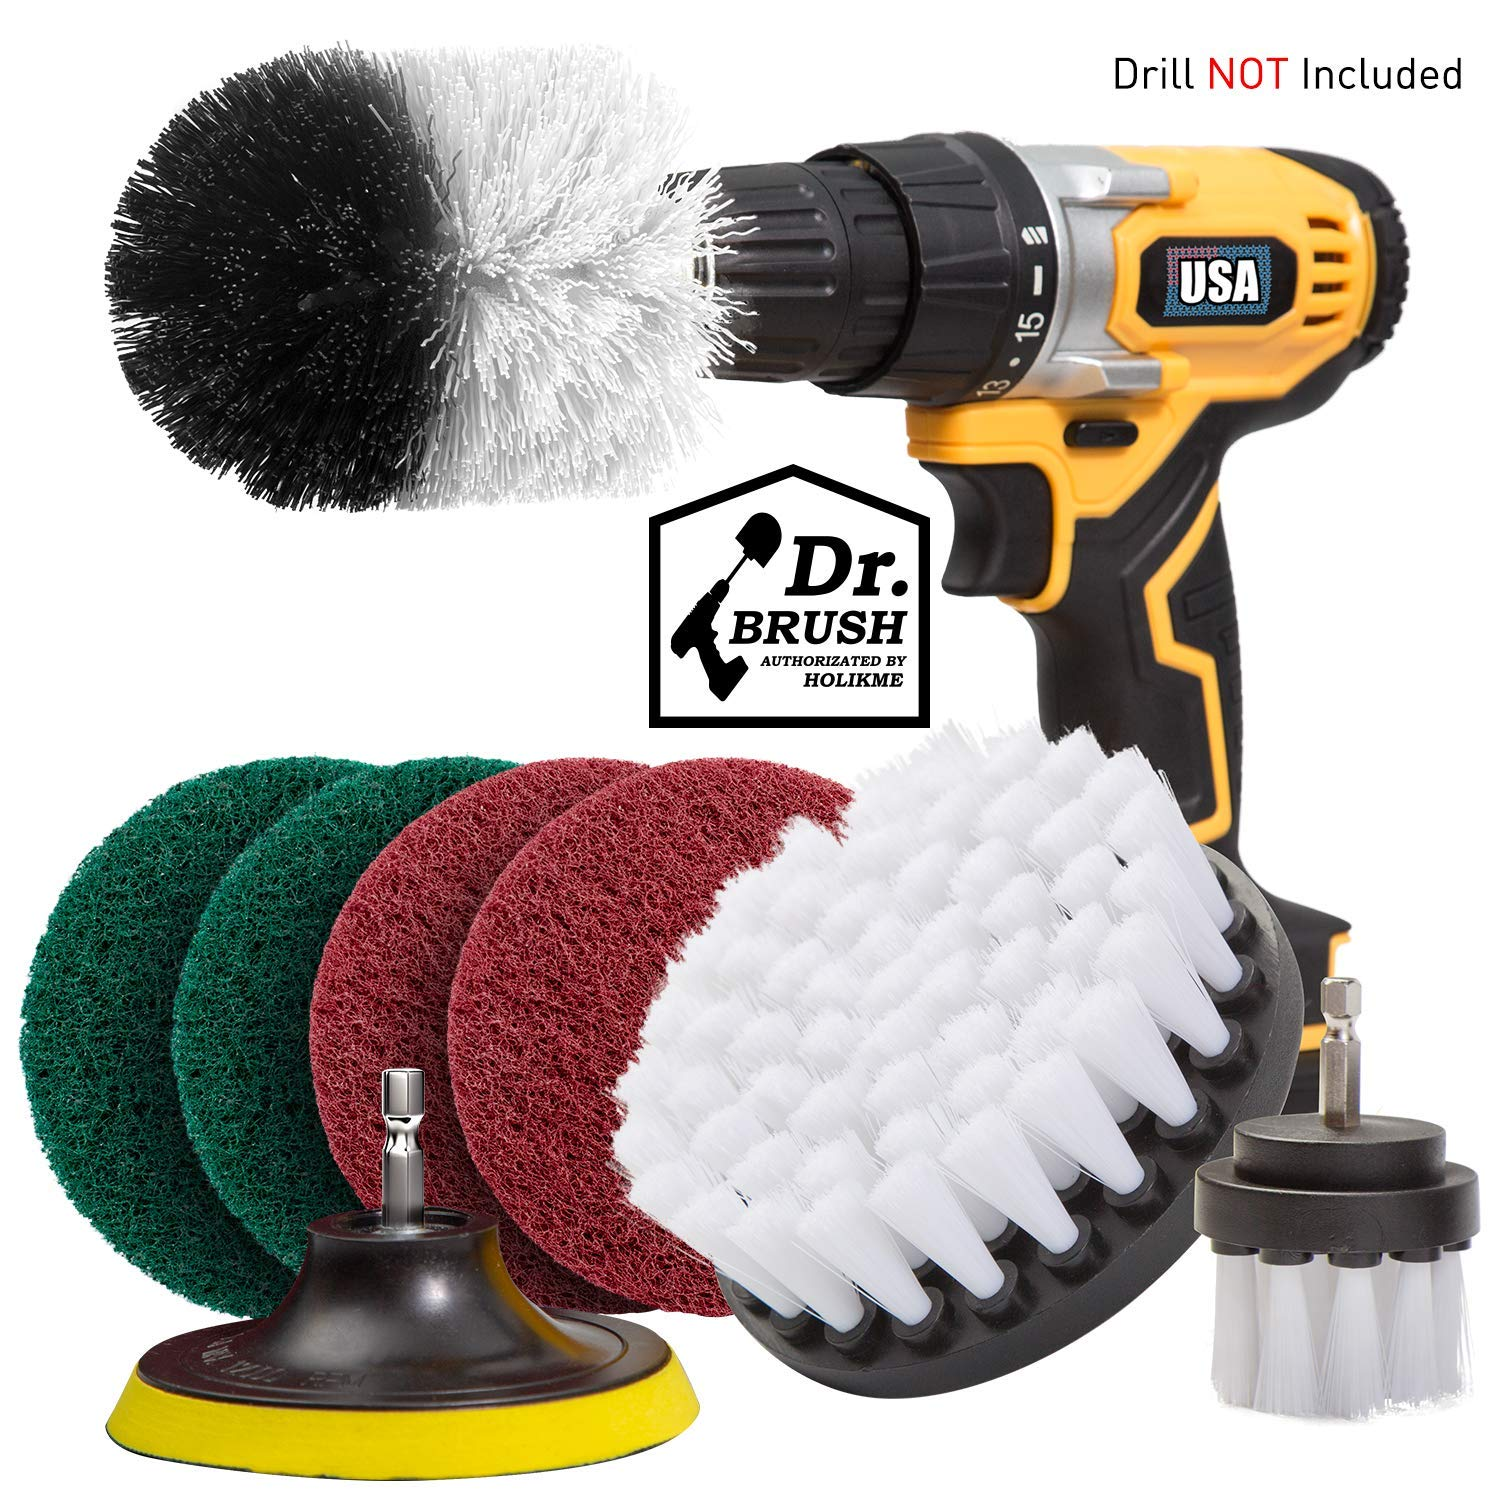 Holikme 8 Piece Drill Brush Attachment Set Scouring Pads Power Scrubber Brush Scrub Pads Cleaning Kit-All Purpose Cleaner for Bathroom Surfaces, Grout, Floor, Tub, Shower, Tile, Corners White